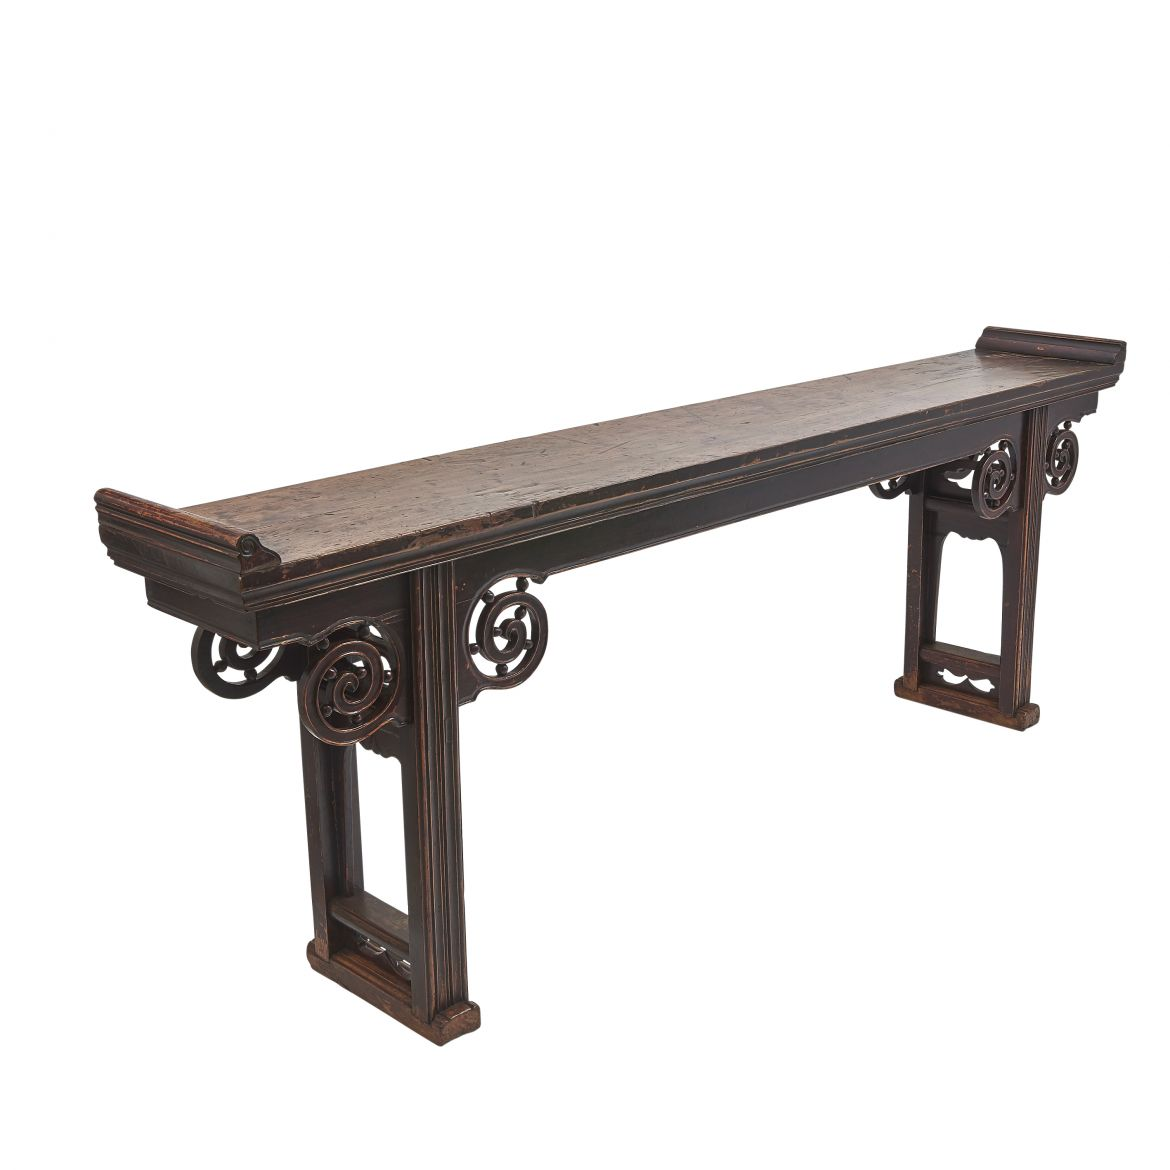 Chinese Shanxi Province Elm Altar Table